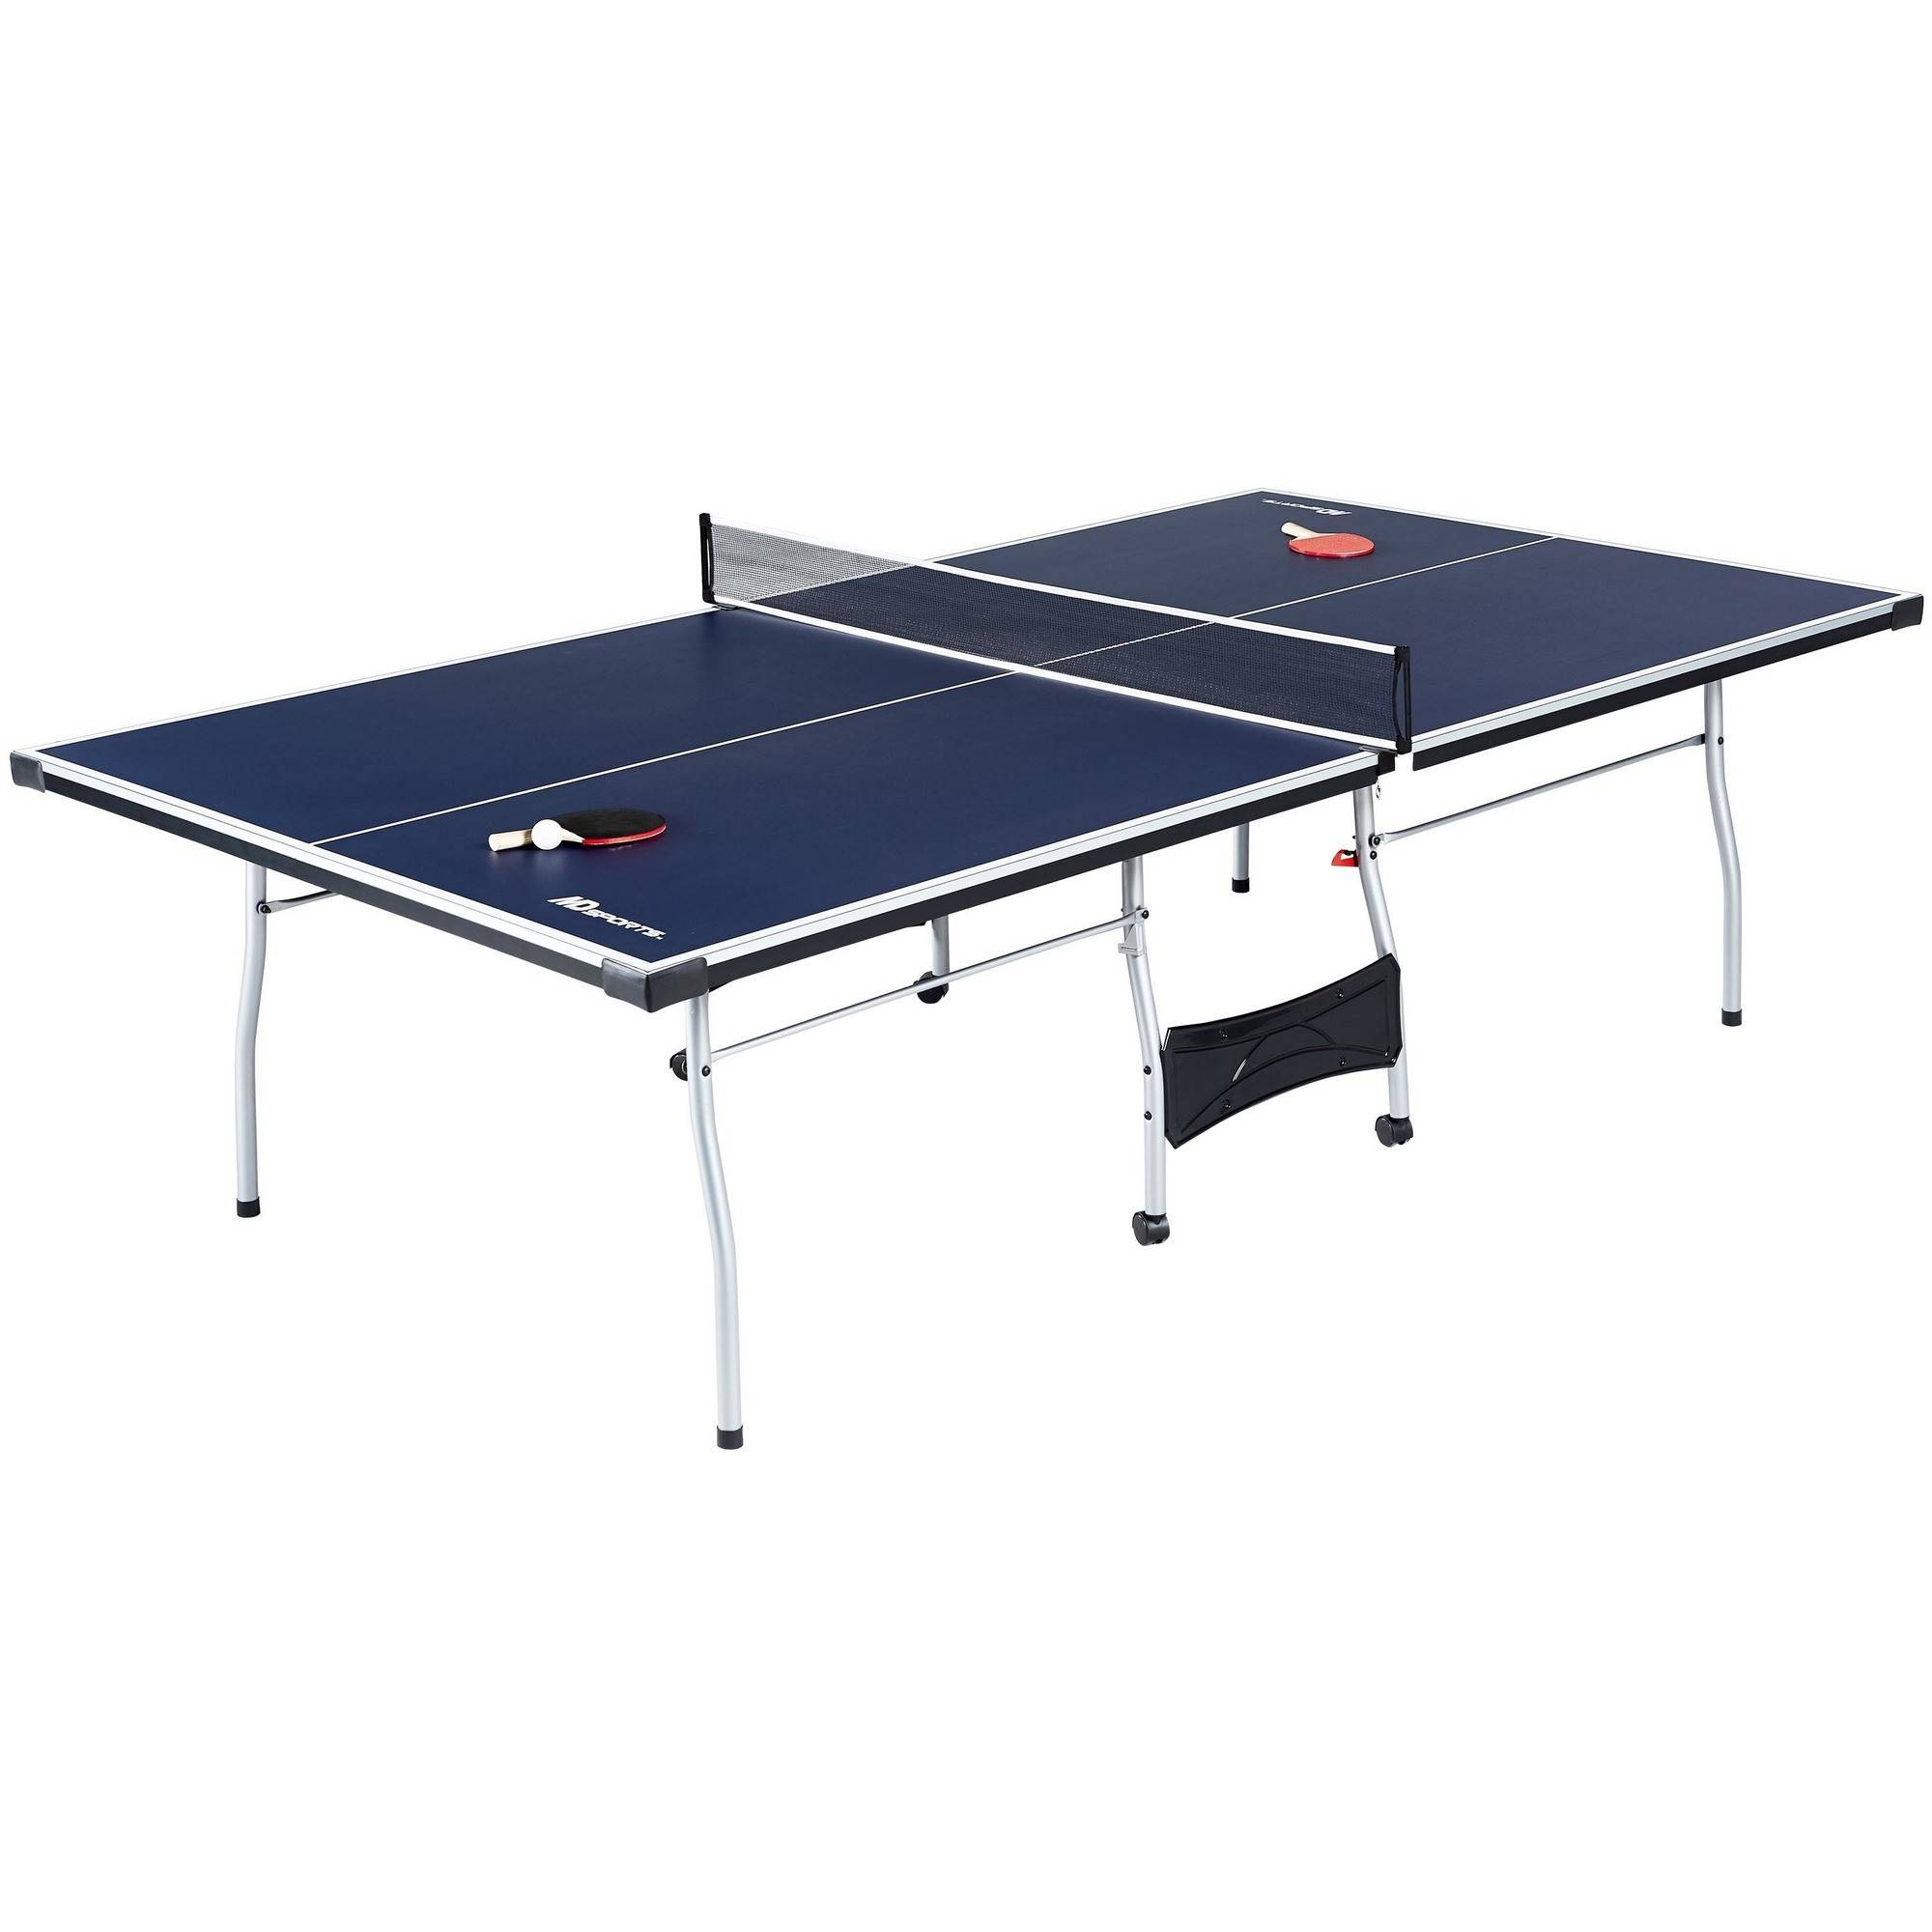 Exceptionnel MD Sports Official Size Table Tennis Table, With Paddle And Balls,  Blue/White